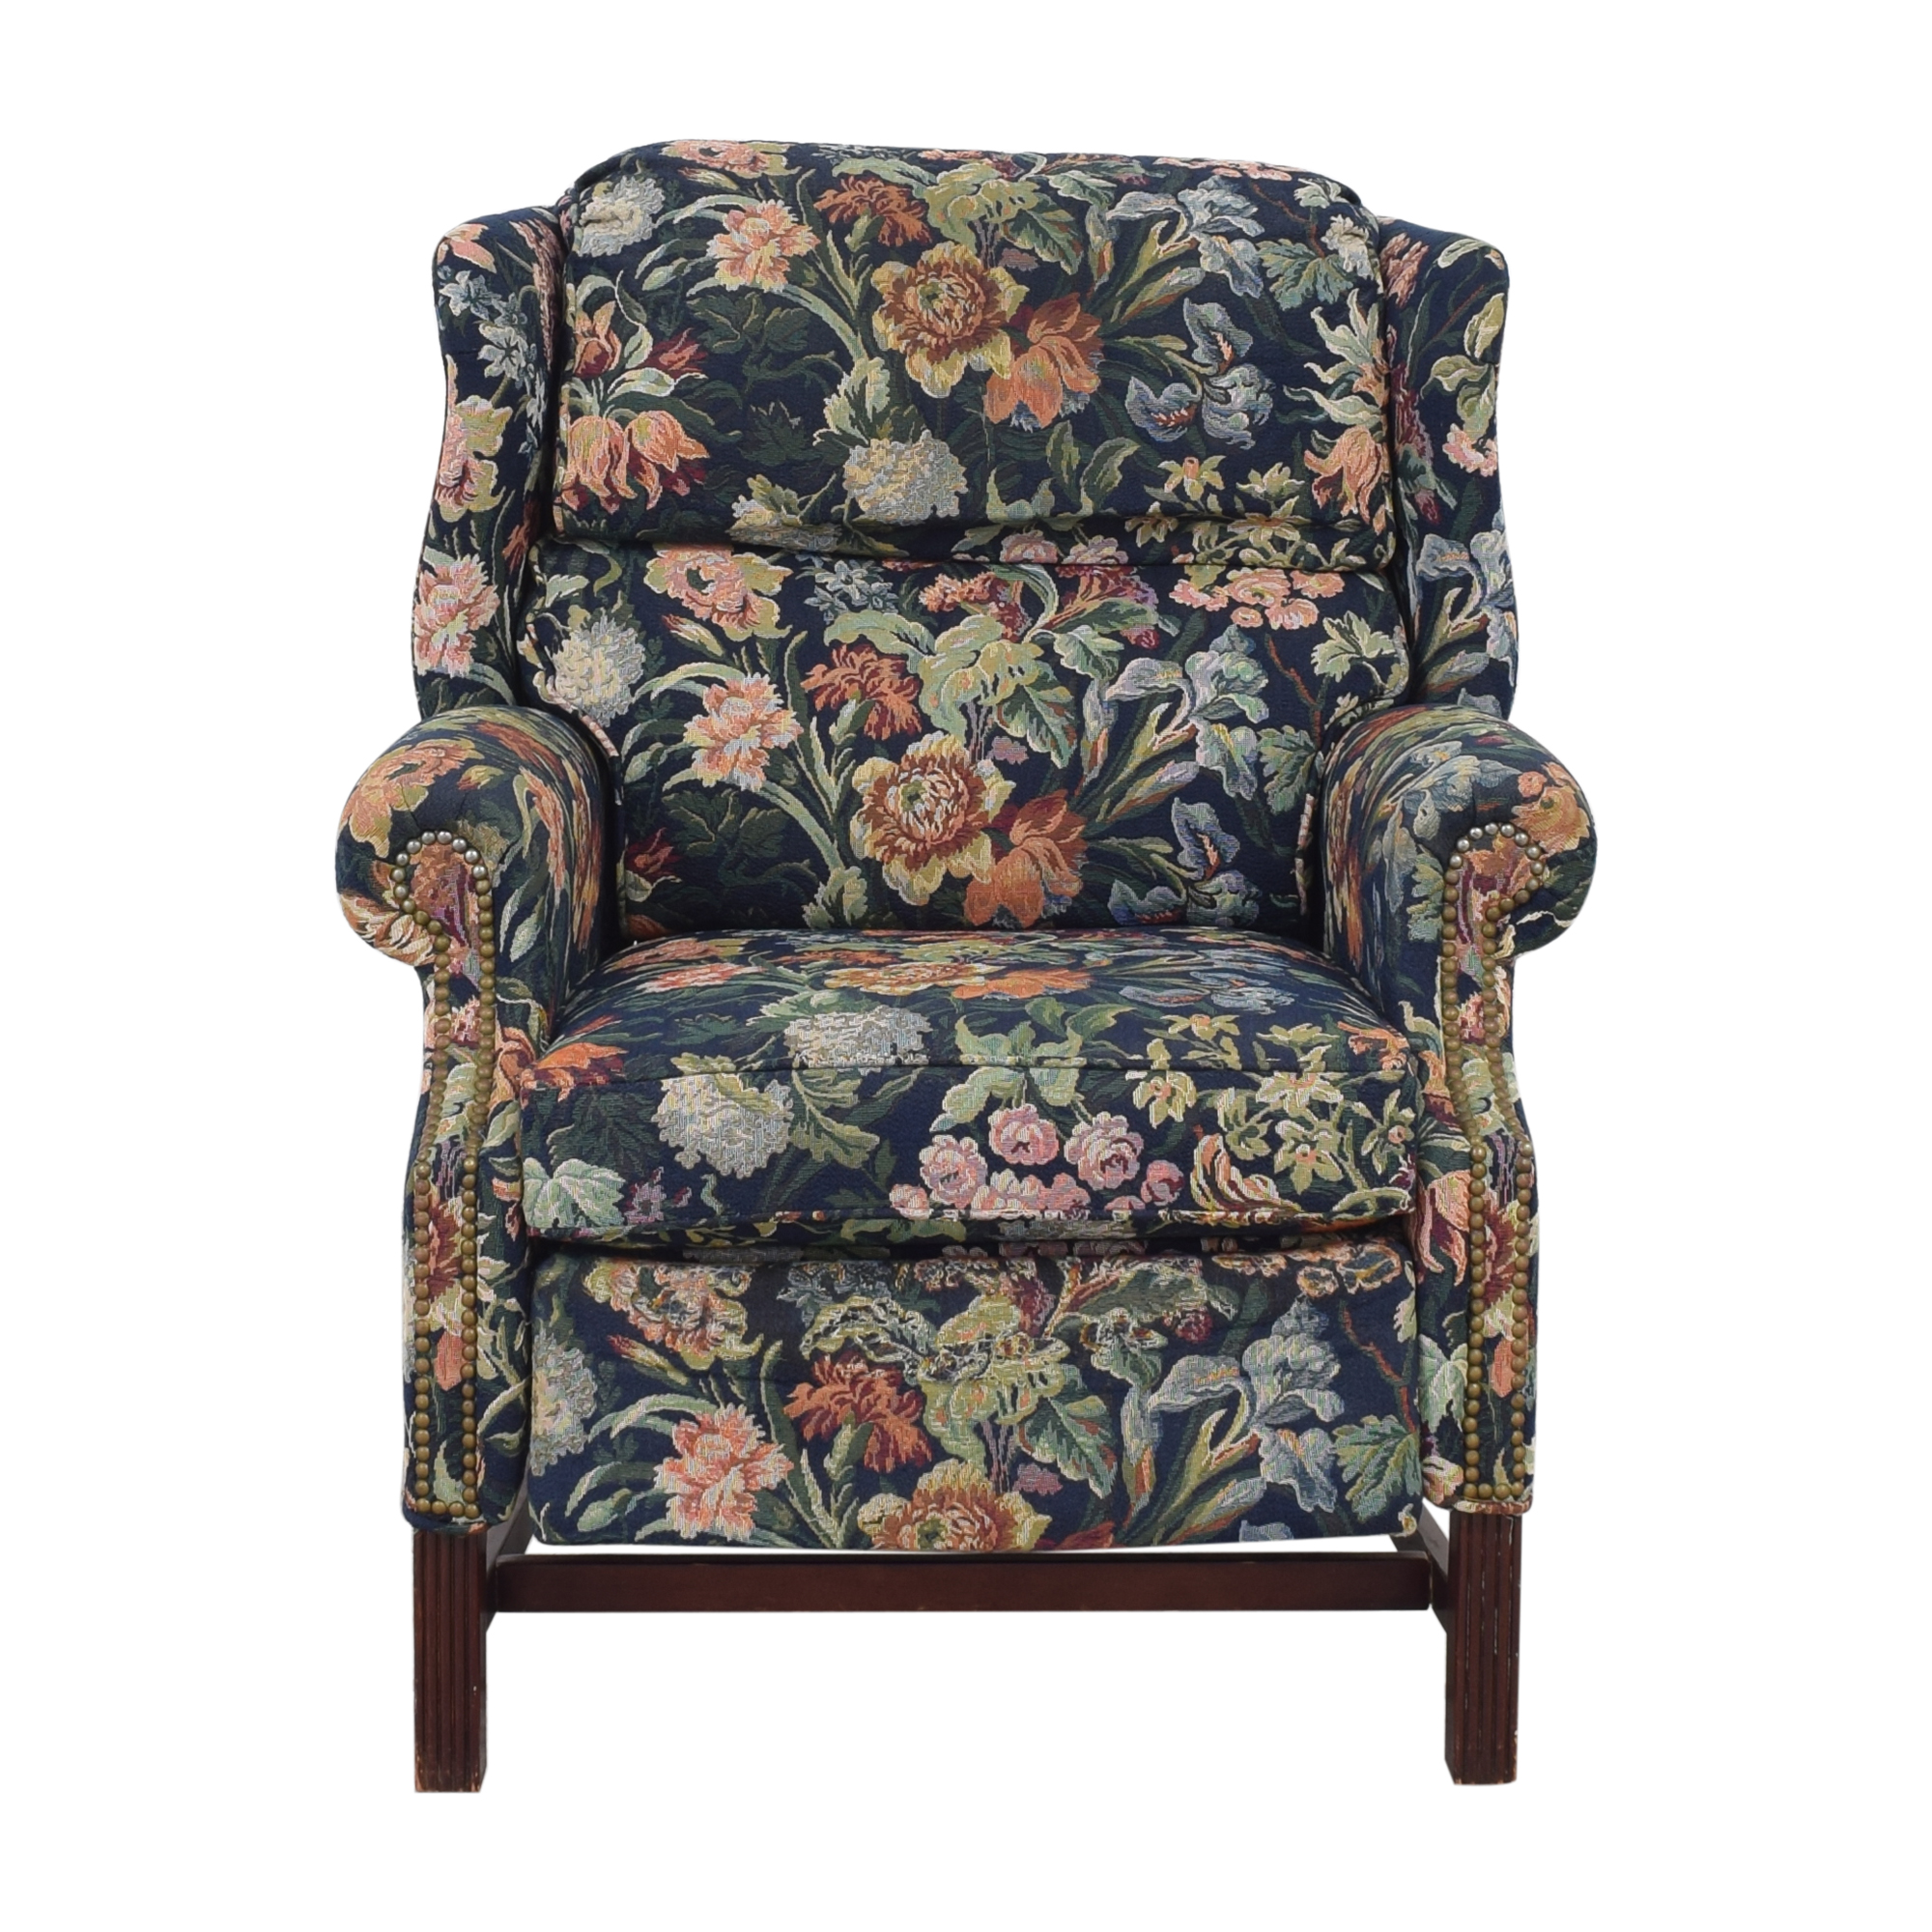 Thomasville Thomasville Wing Recliner Chair nj